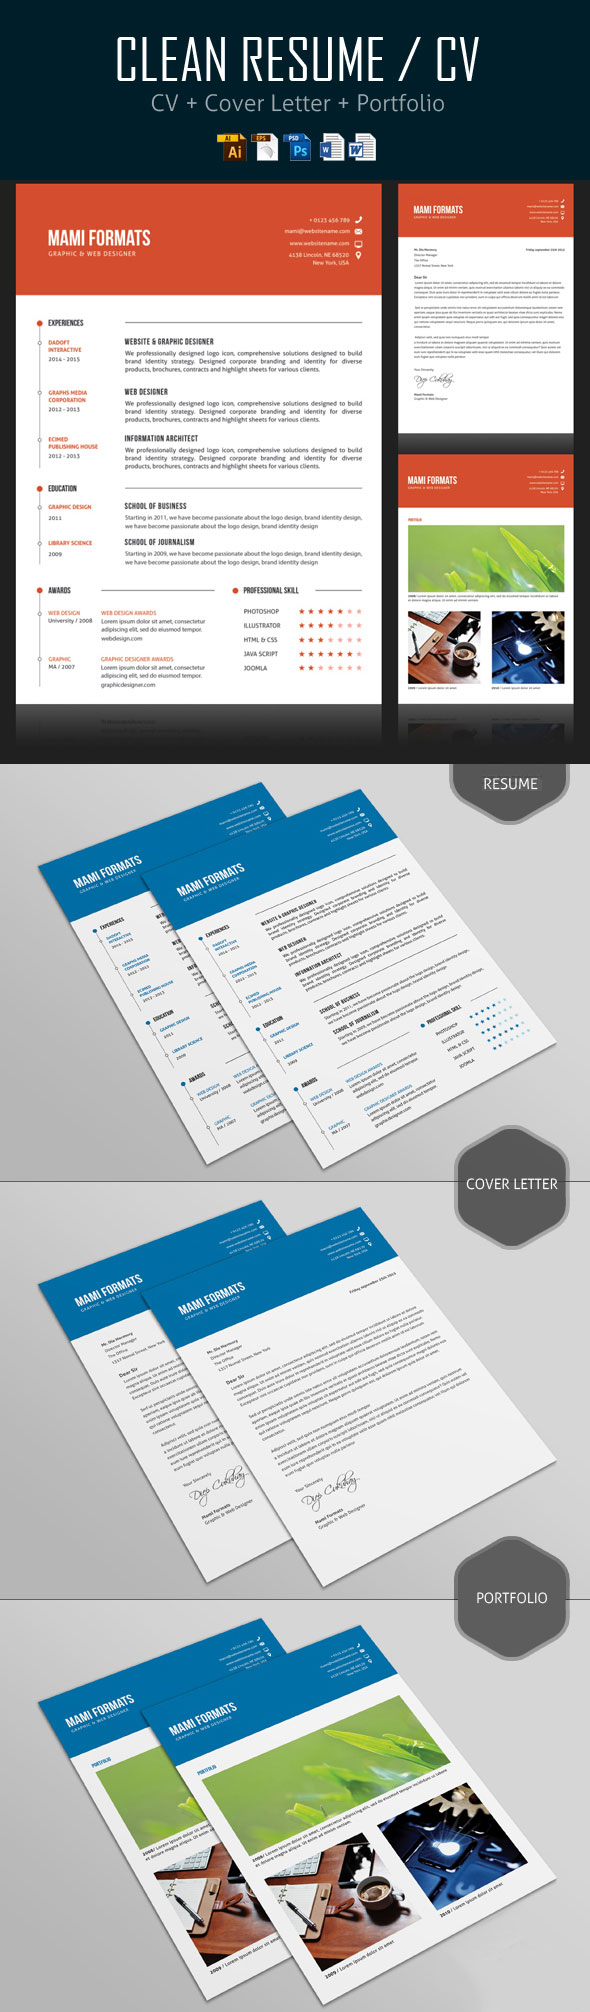 simple cvresume cover letter design - Writing Cover Letter For Resume